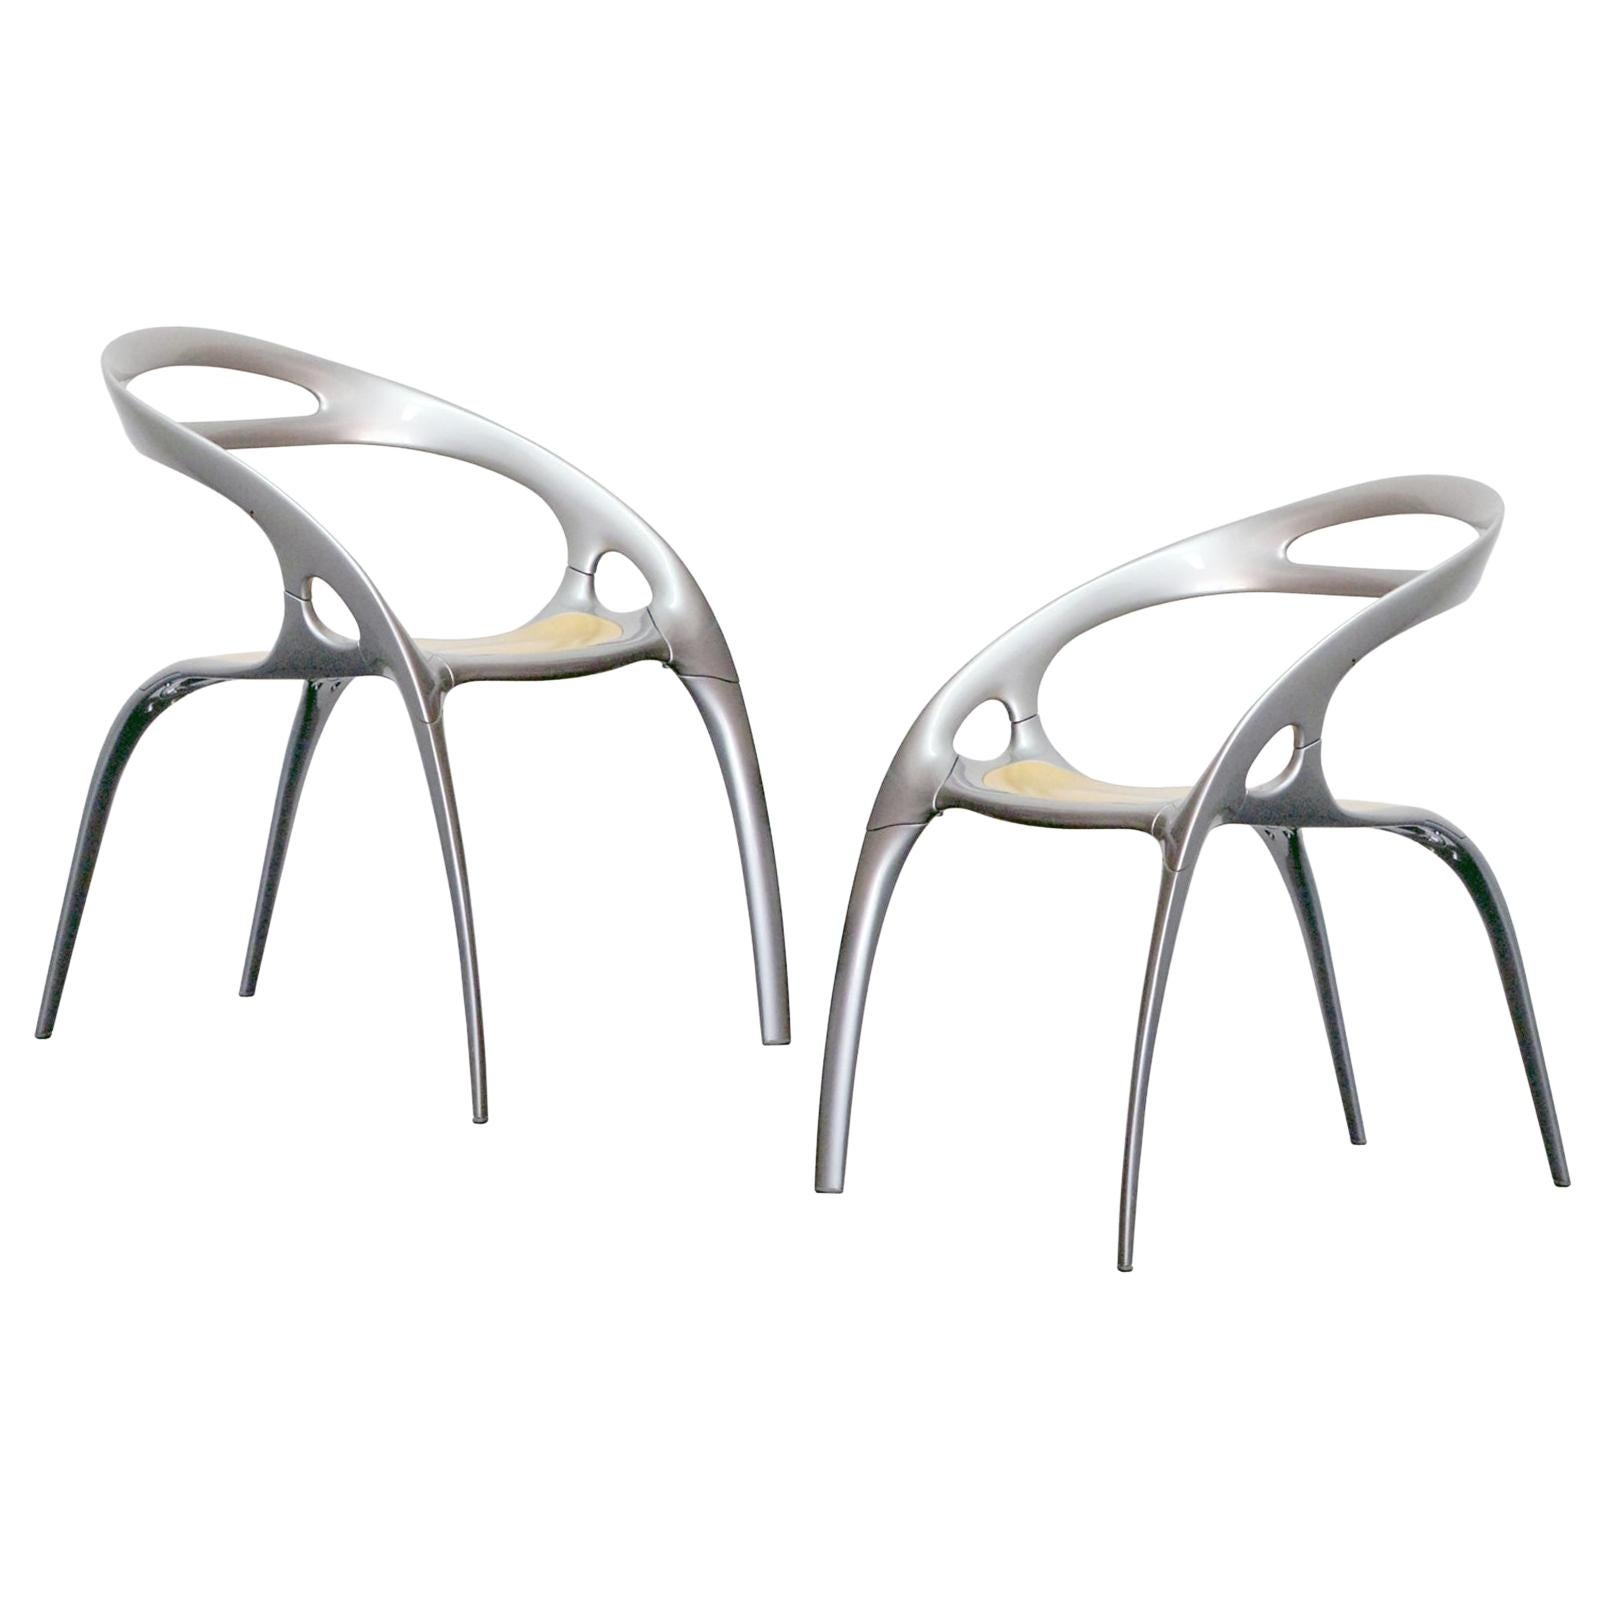 Go-Chairs by Ross Lovegrove